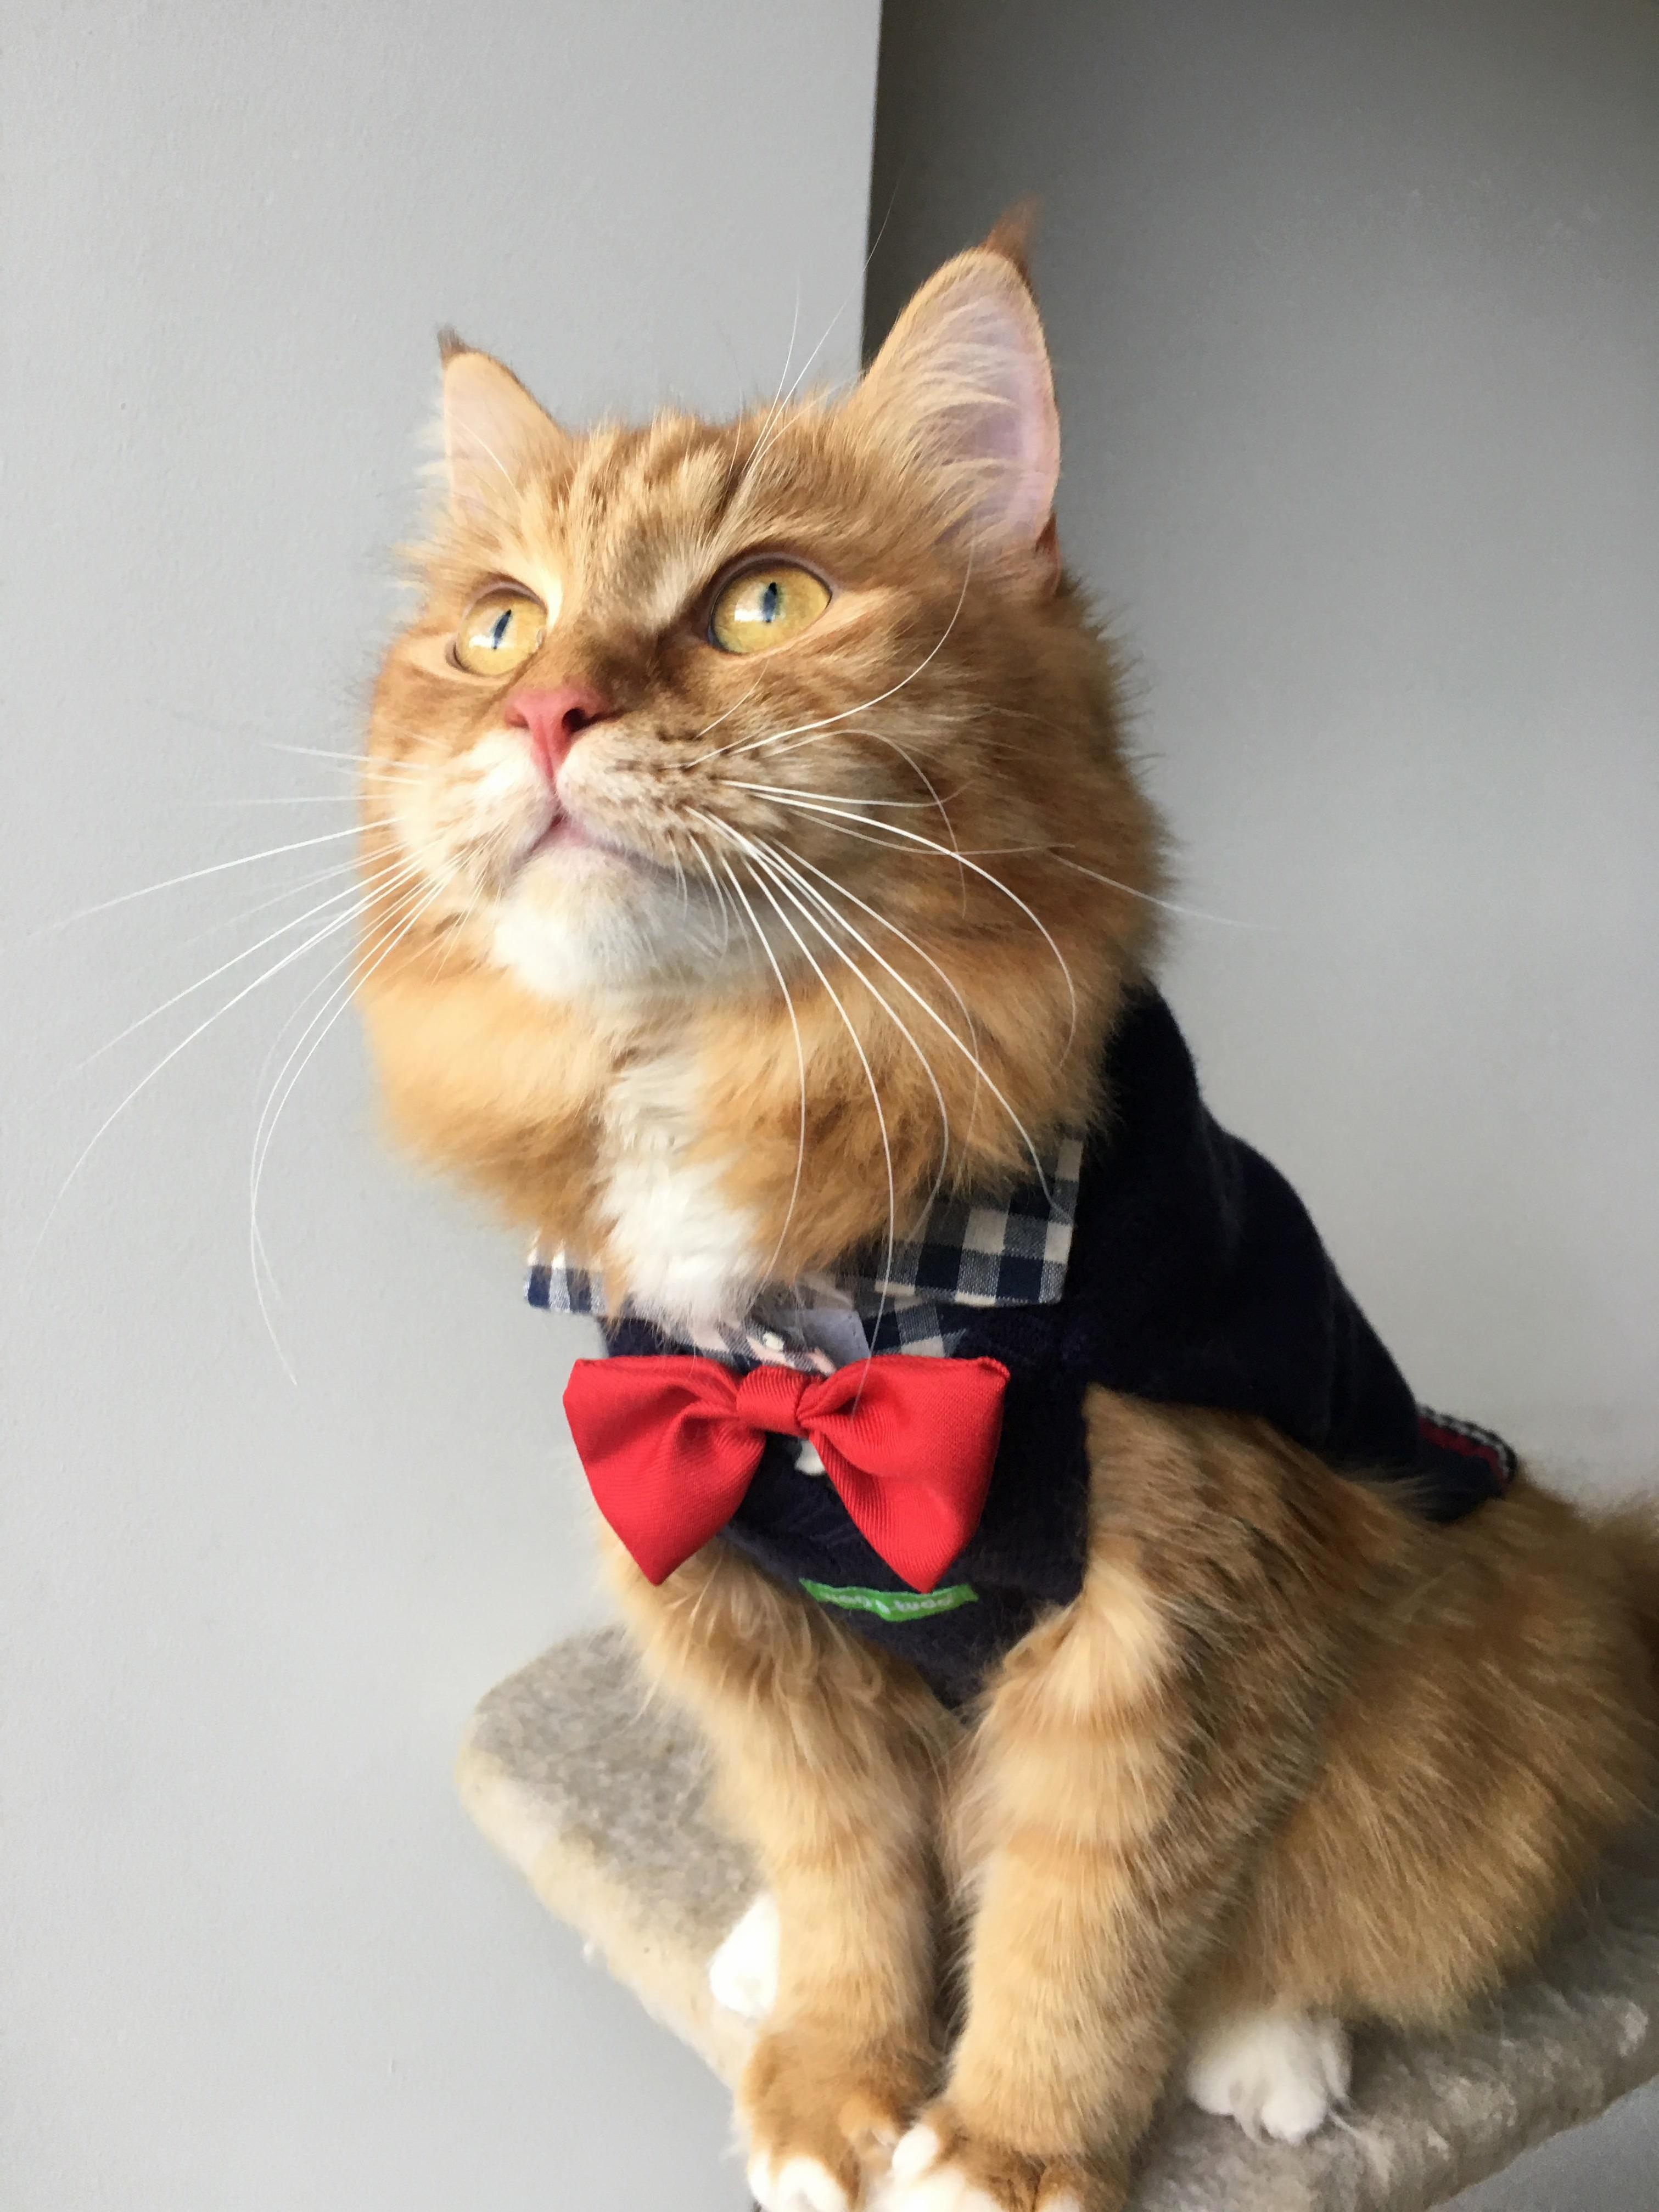 Toots cat all dressed up